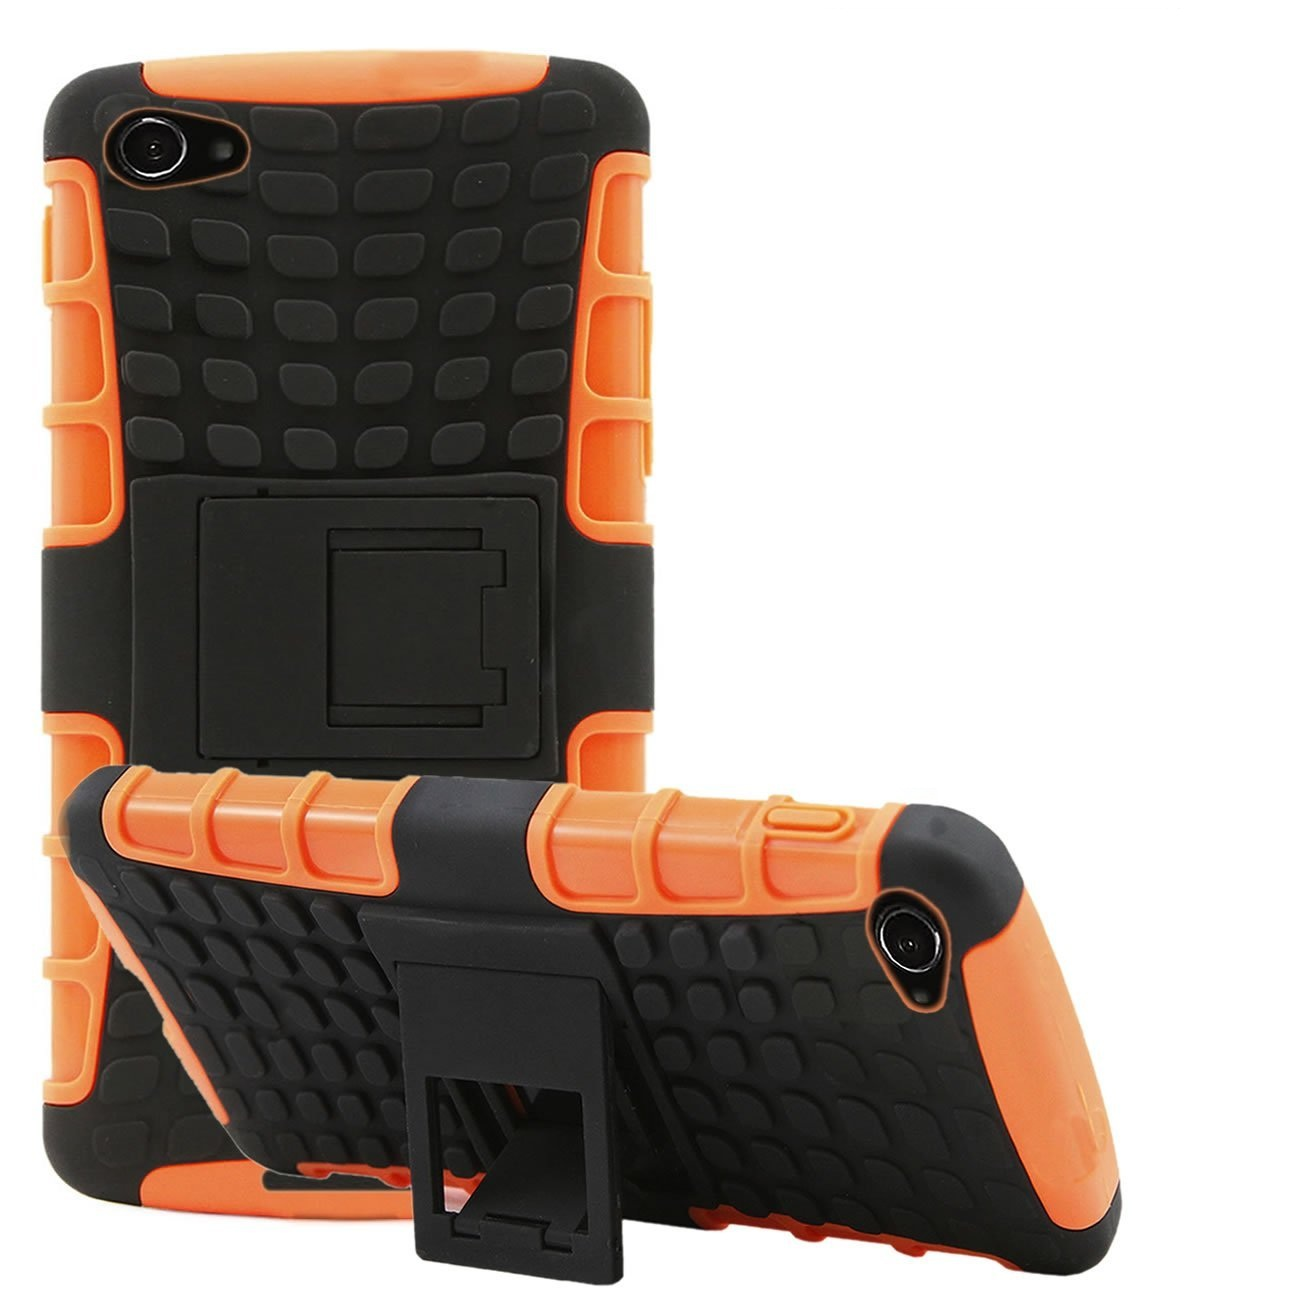 Heartly Flip Kick Stand Spider Hard Dual Rugged Armor Hybrid Bumper Back Case Cover For Sony Xperia E3 And E3 Dual Sim D2203   Mobile Orange